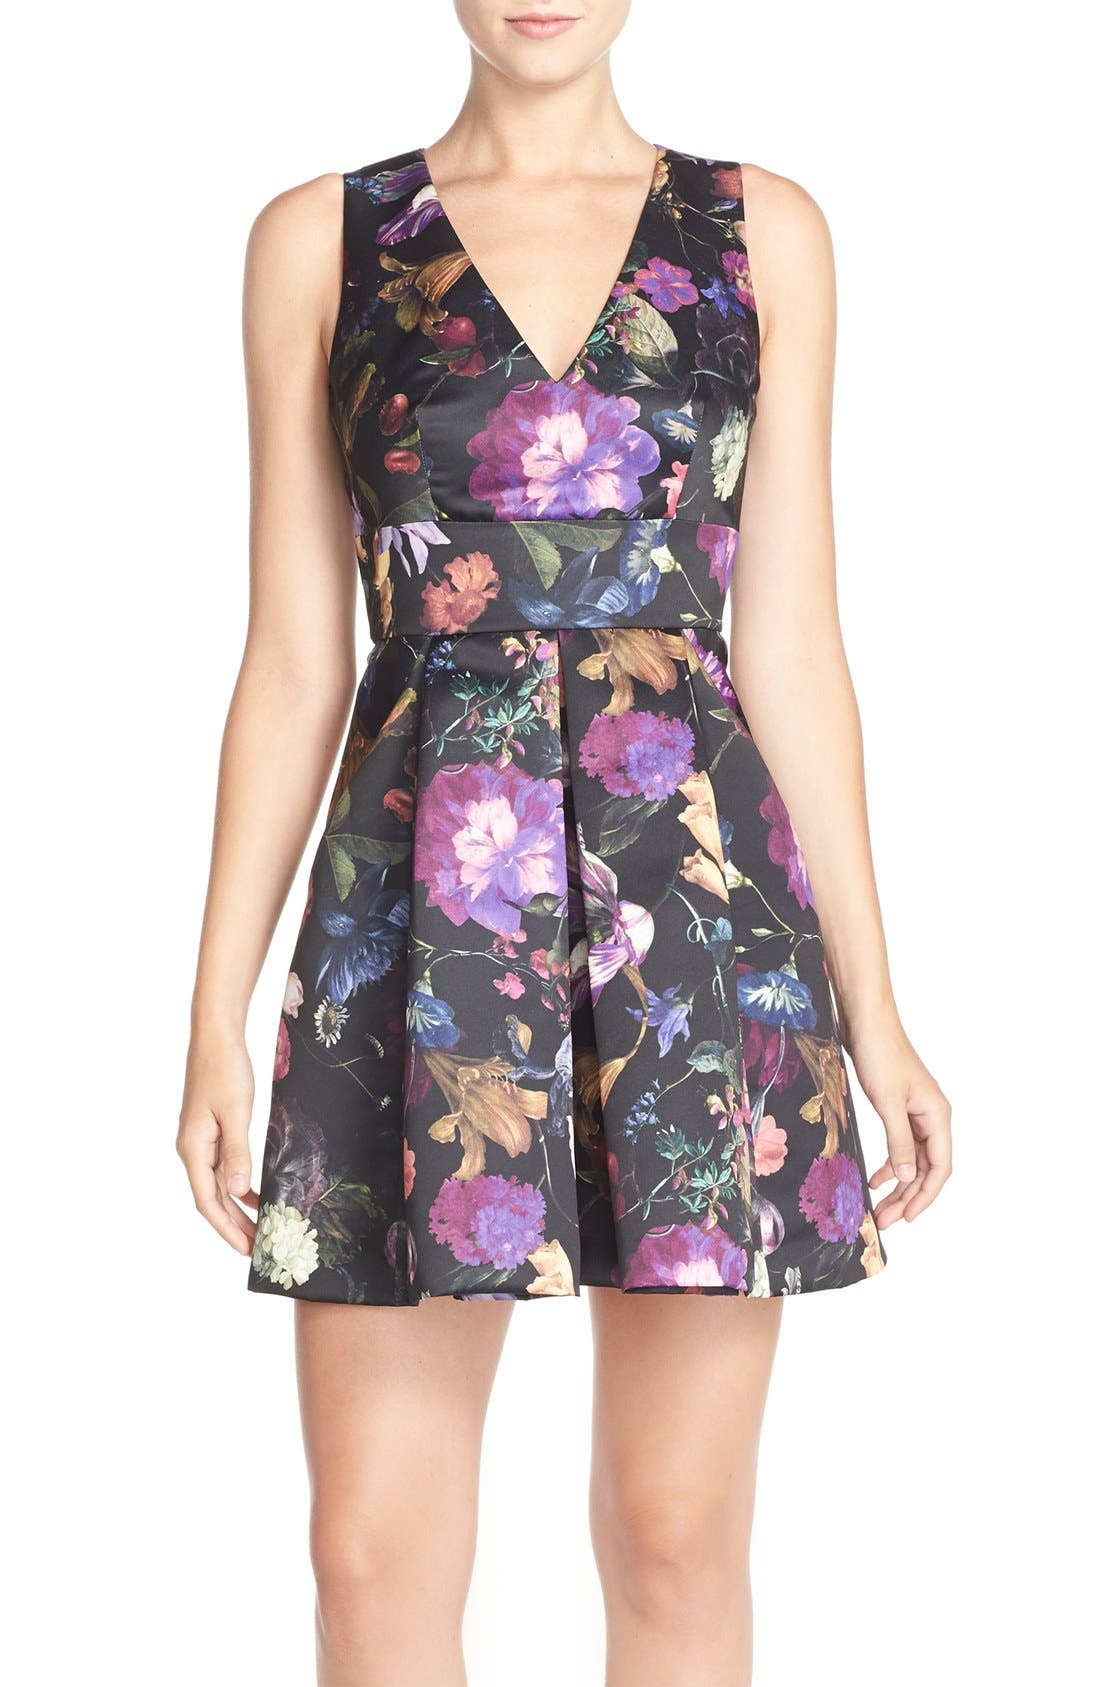 Cythia Rowley 'Winter' Floral Print Woven Fit & Flare Dress, Main, color, 009